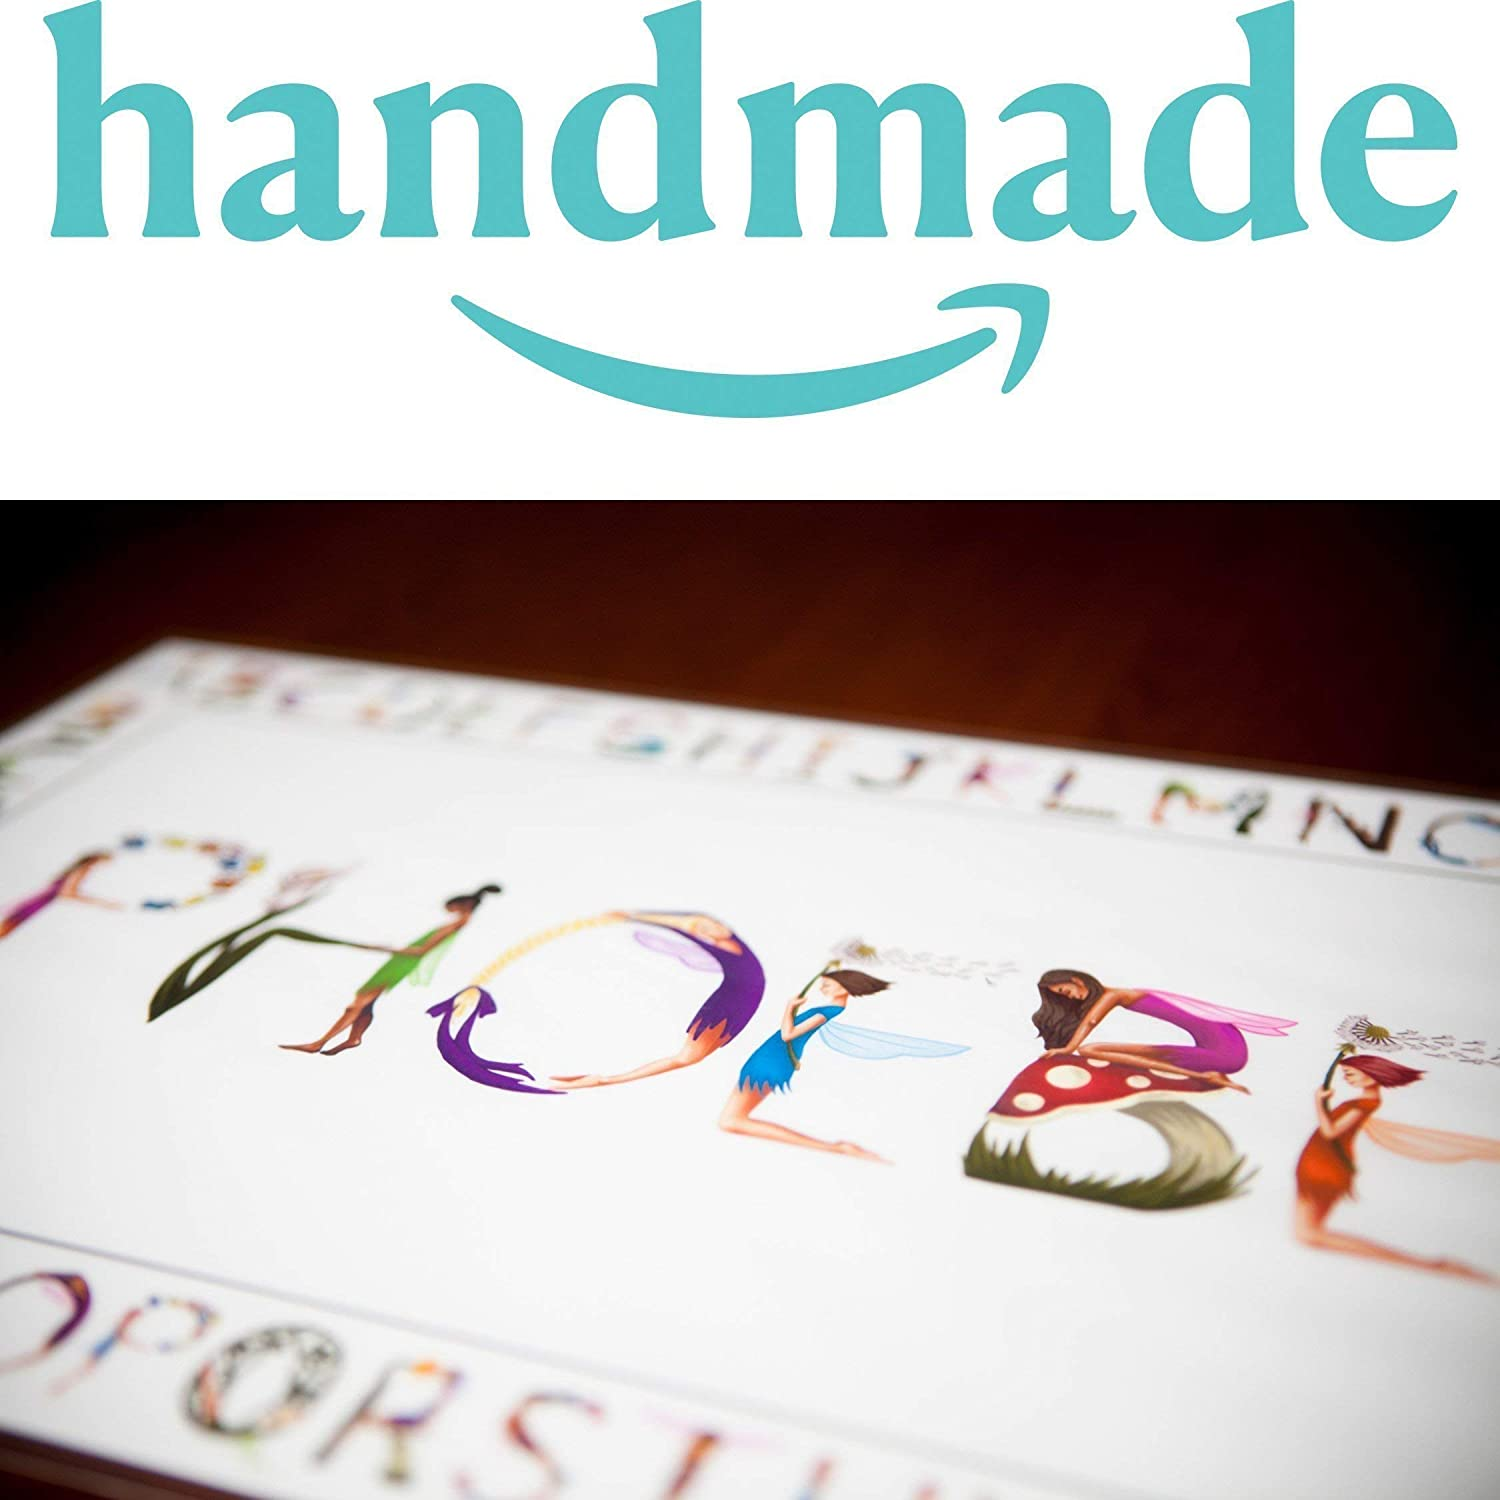 Name Gift for Kids - Personalized Placemat for Kids with hand-drawn letters - You choose the name - They'll use every day, Perfect for a baby gift, toddler gift or personalized gifts for kids